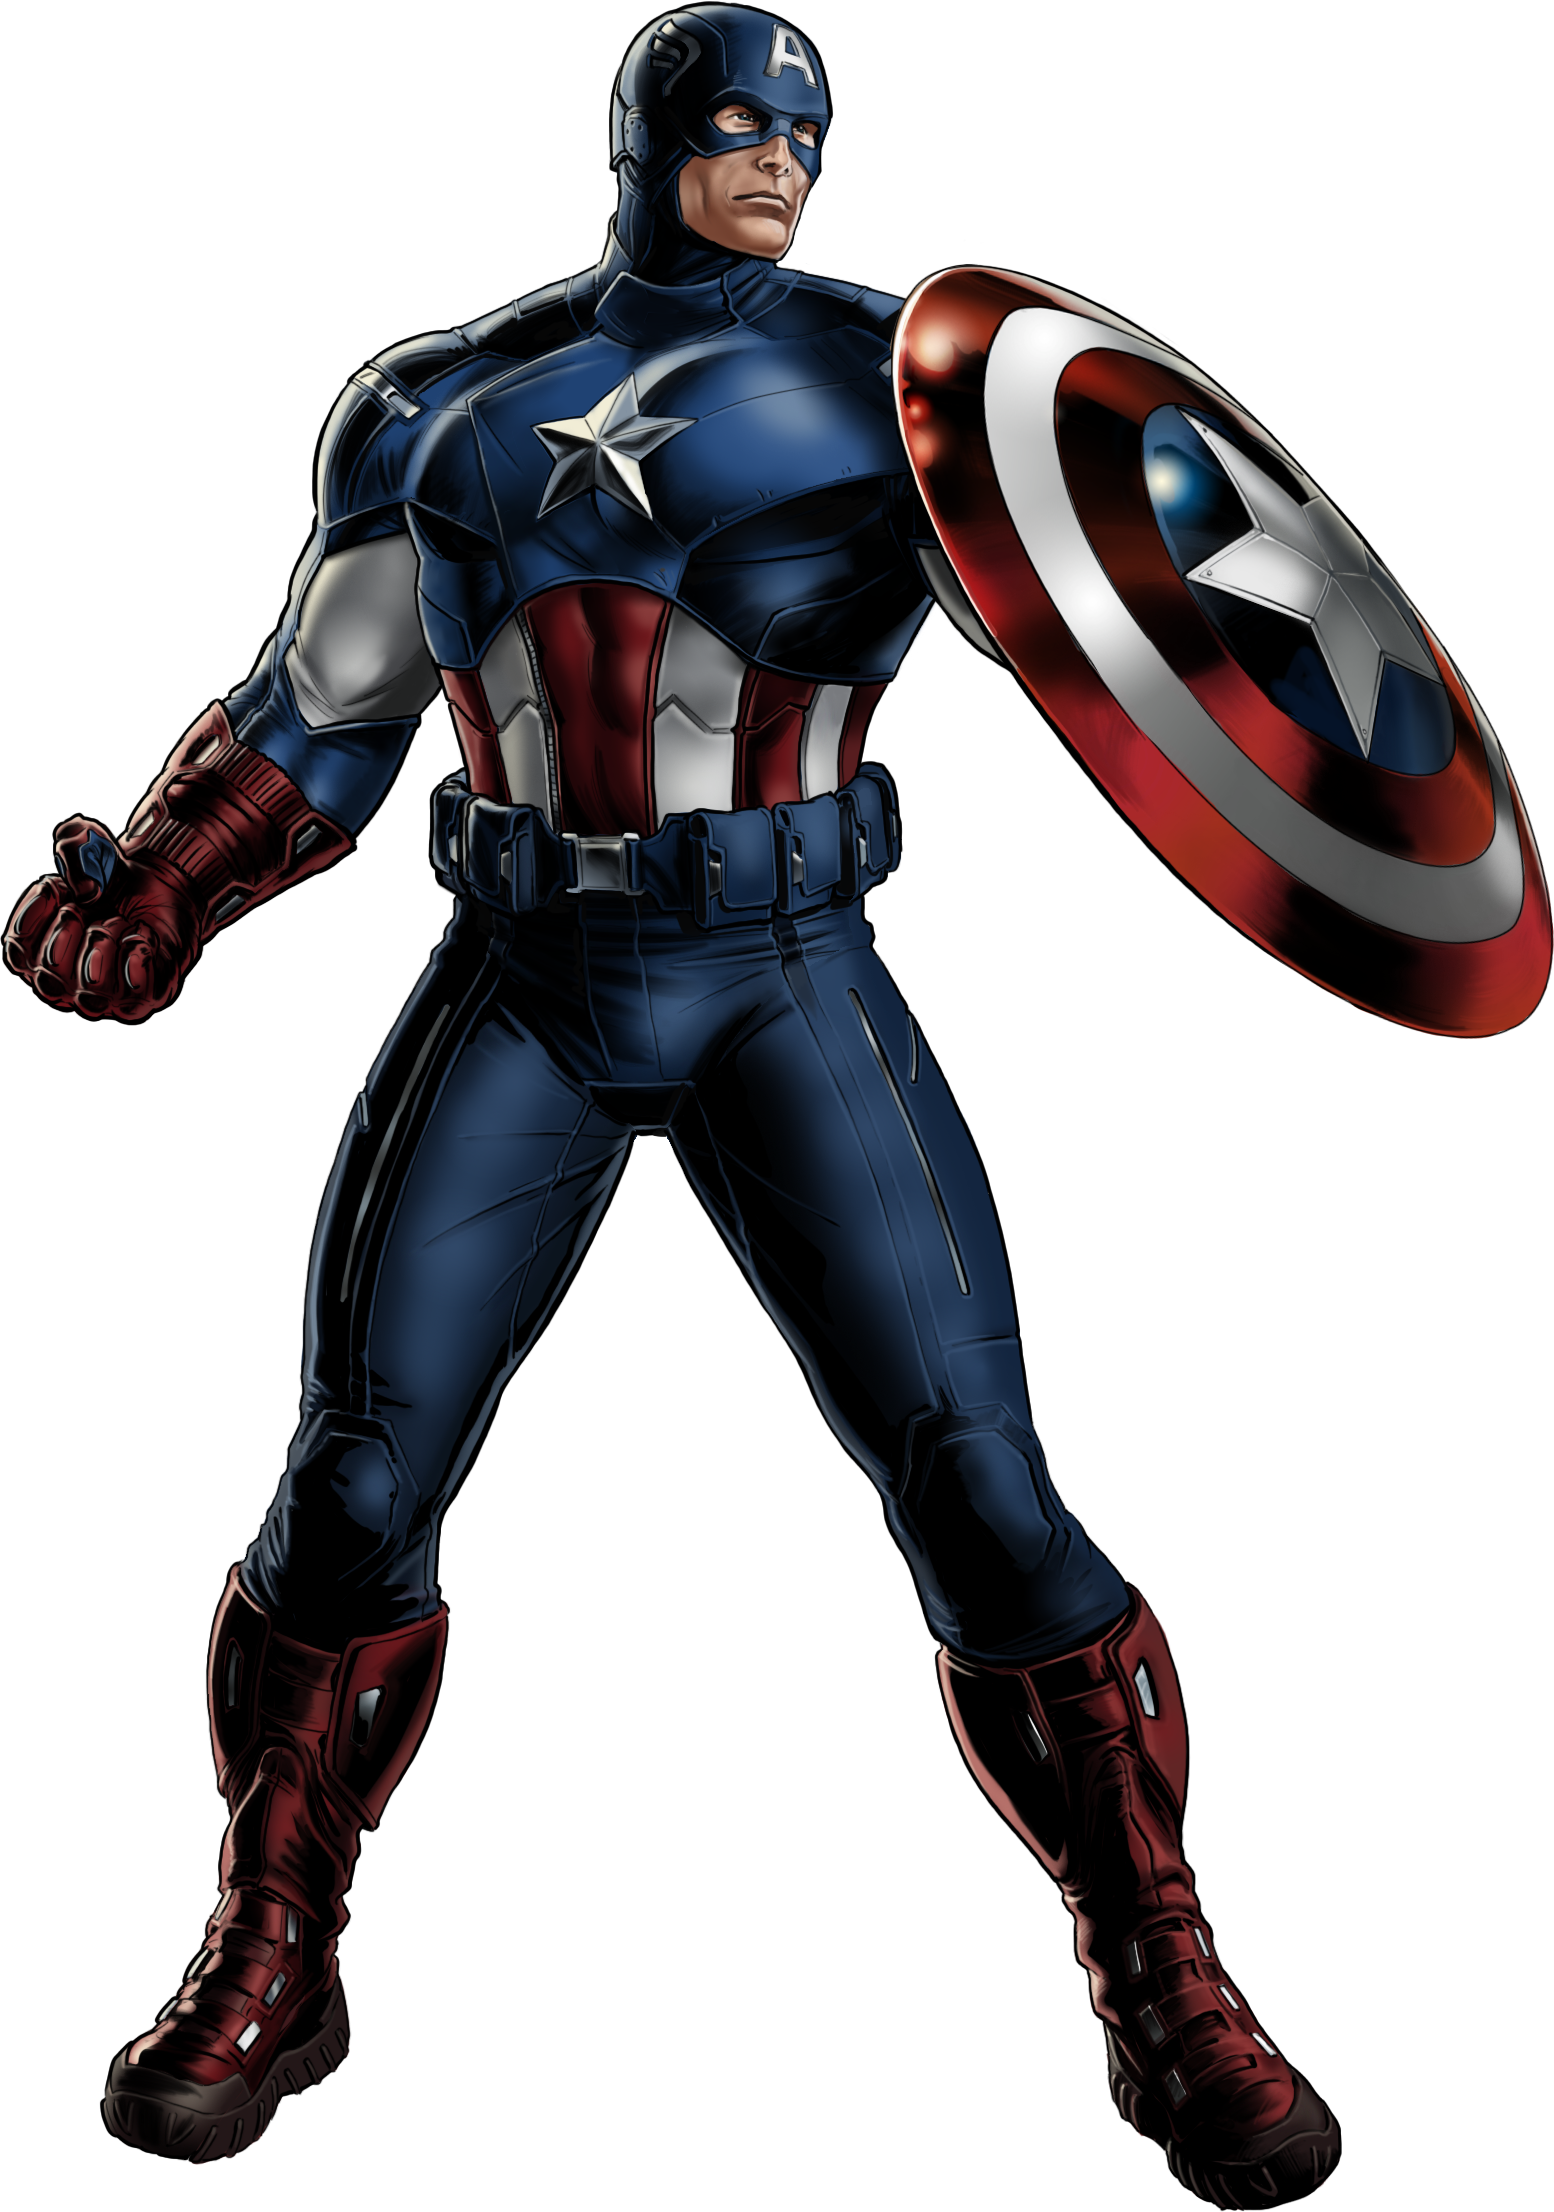 Image - Avengers Captain America Portrait Art.png | Marvel: Avengers  Alliance Wiki | FANDOM powered by Wikia - Avengers HD PNG